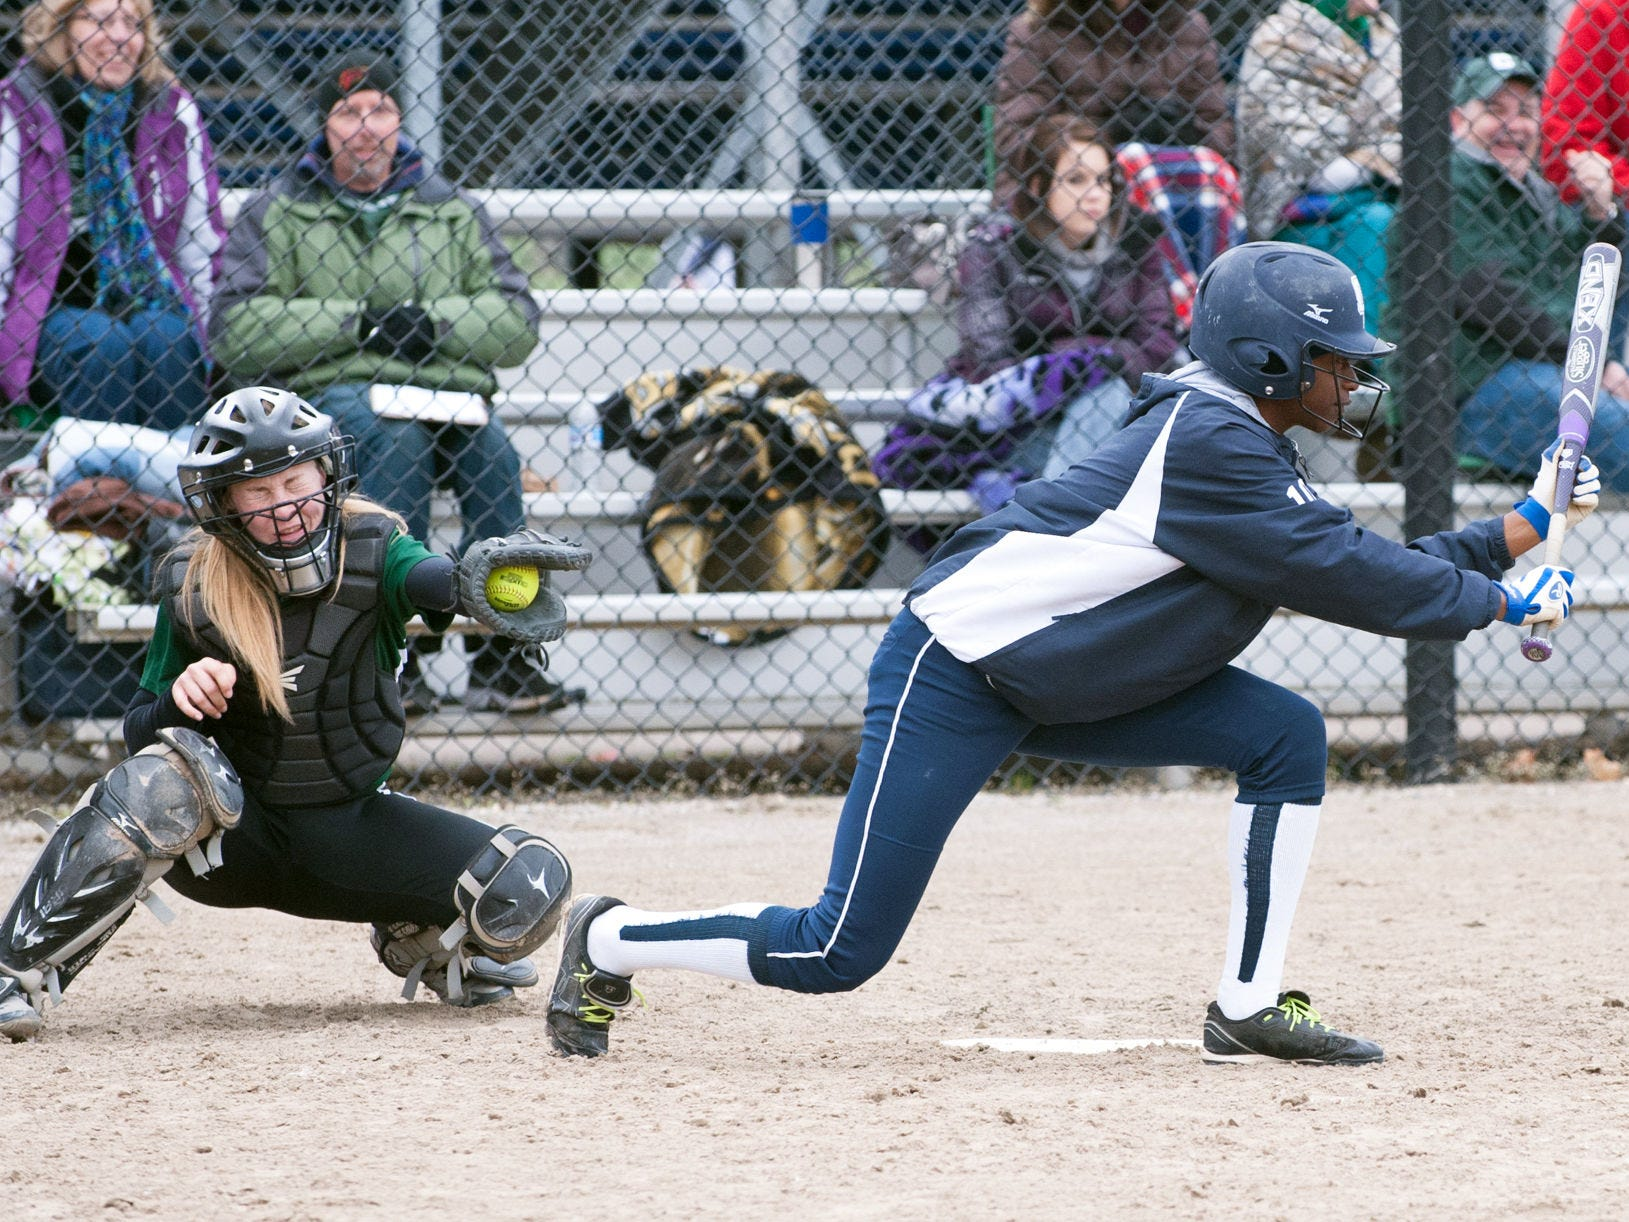 Markeva Love (10) of Gull Lake tries for a bunt on Saturday morning.